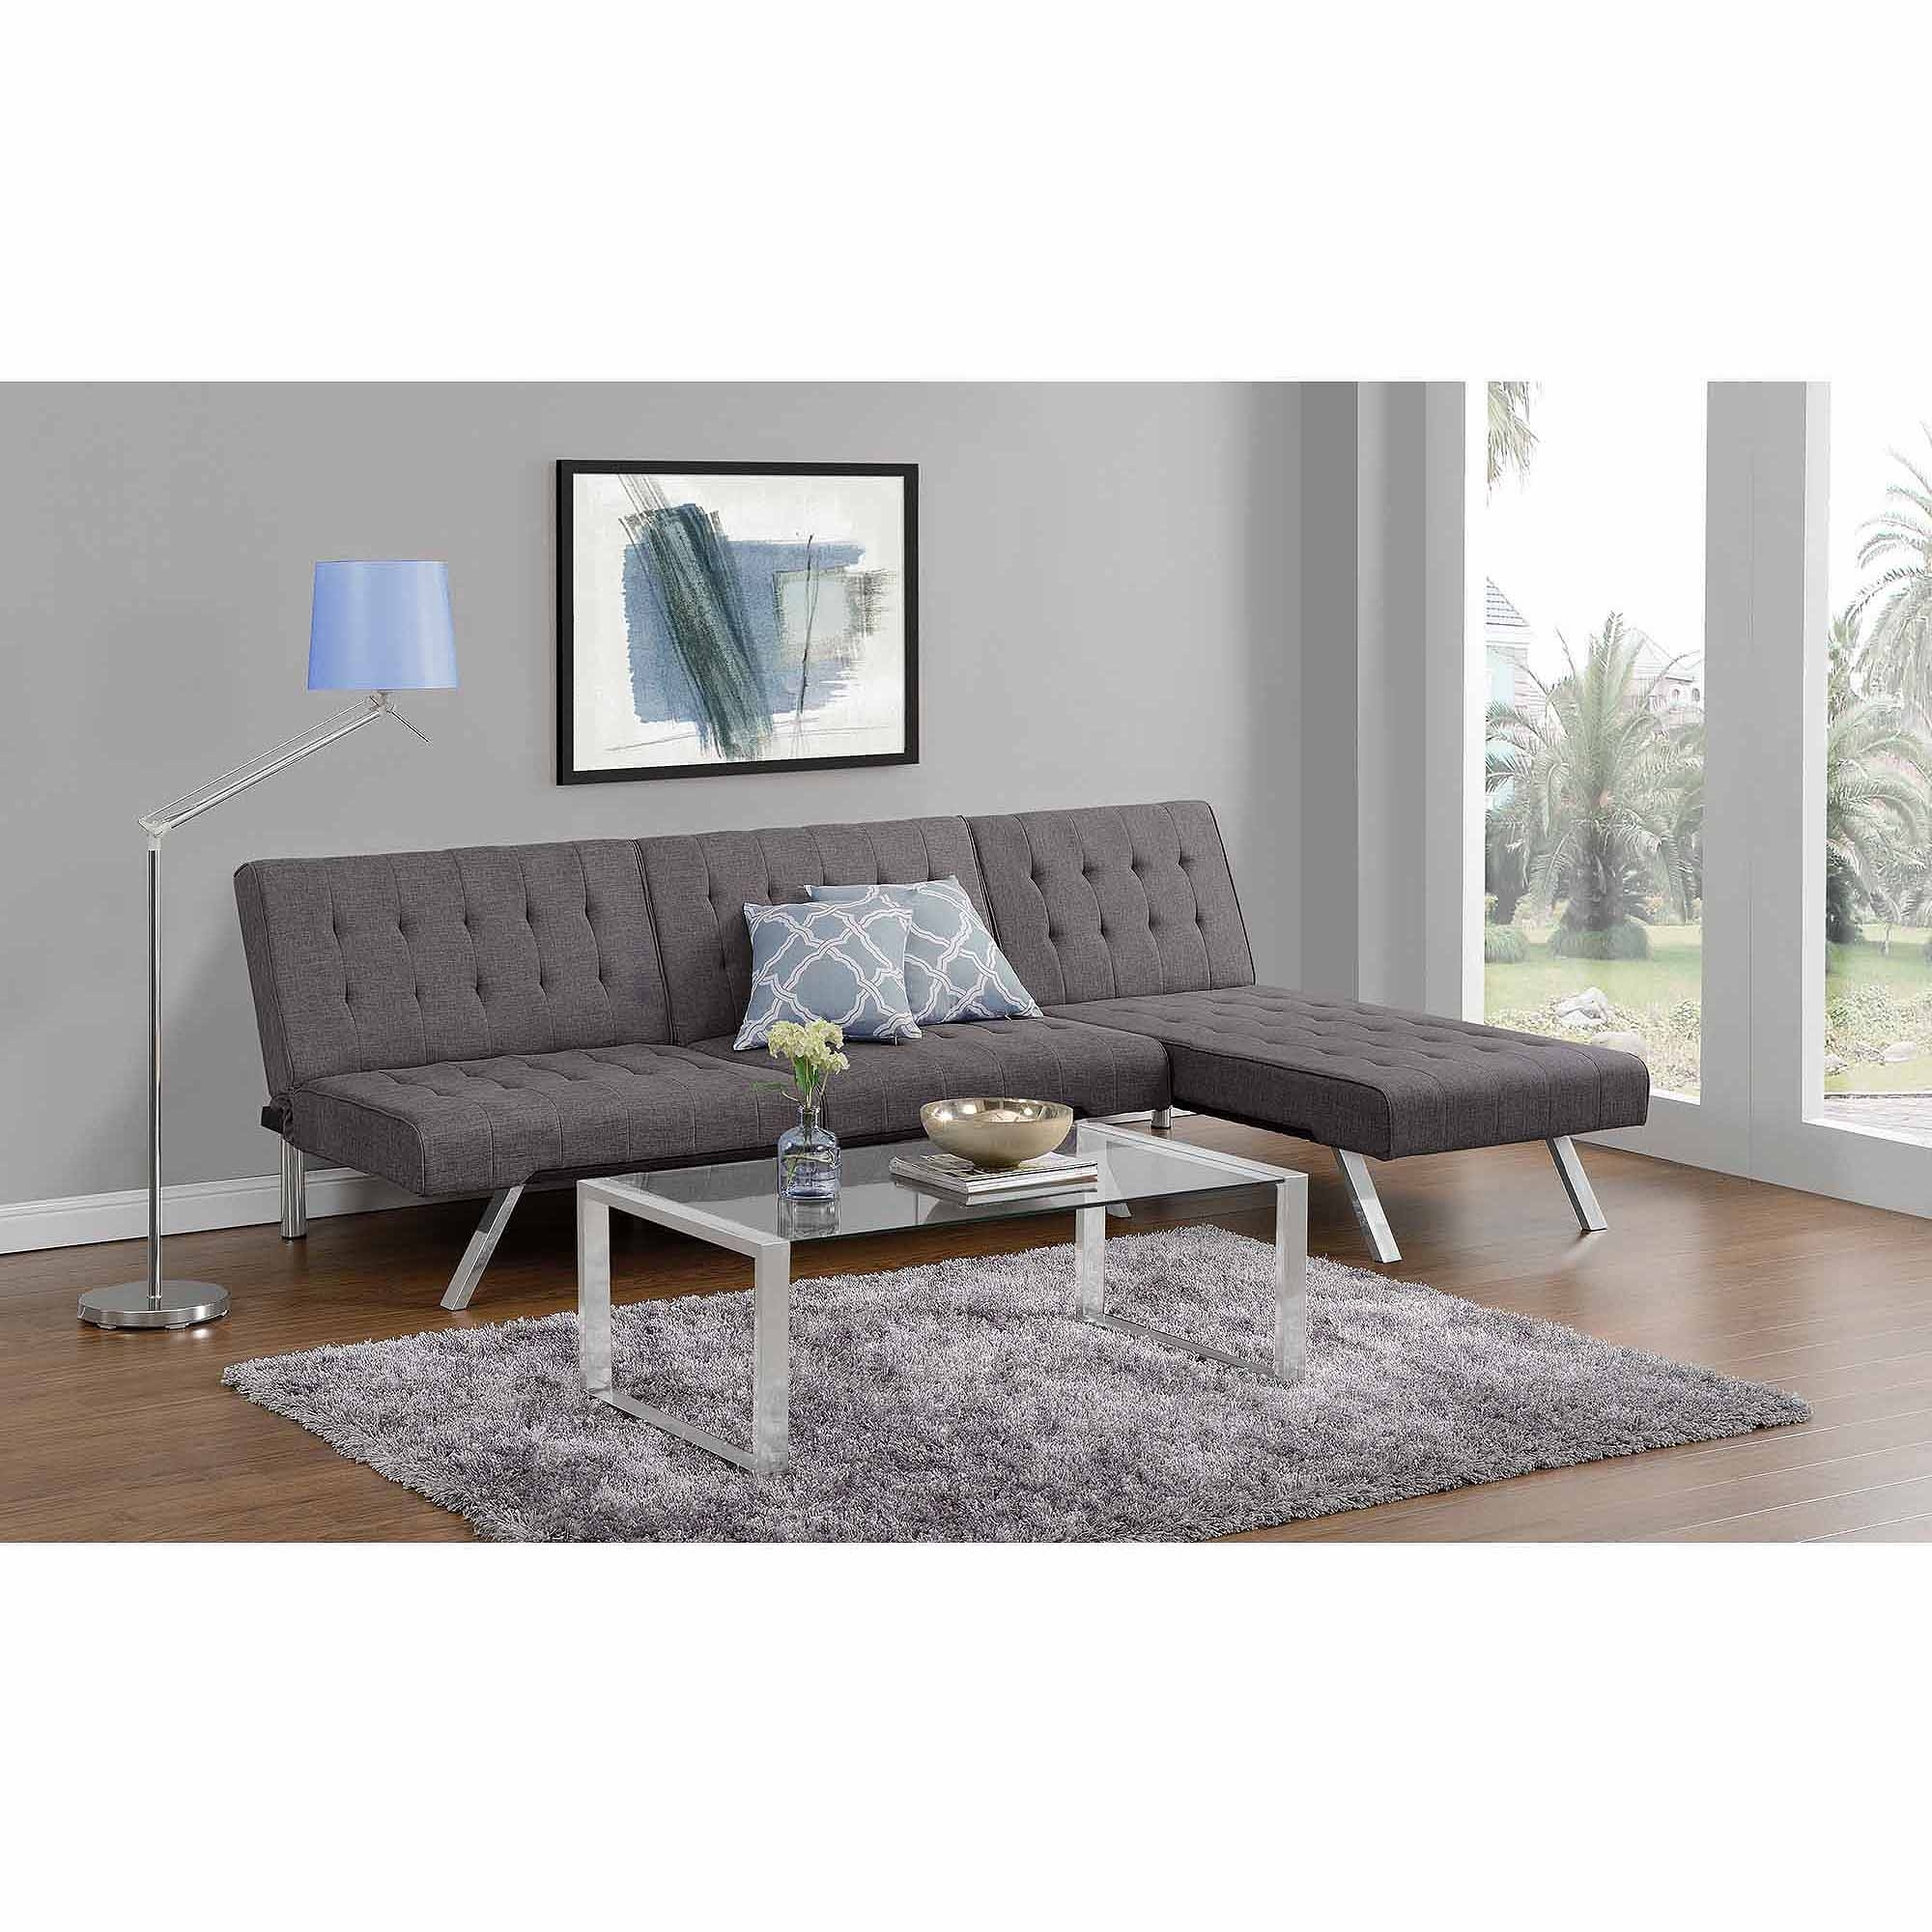 Choice Throughout Most Current Emily Futon Chaise Loungers (View 2 of 15)